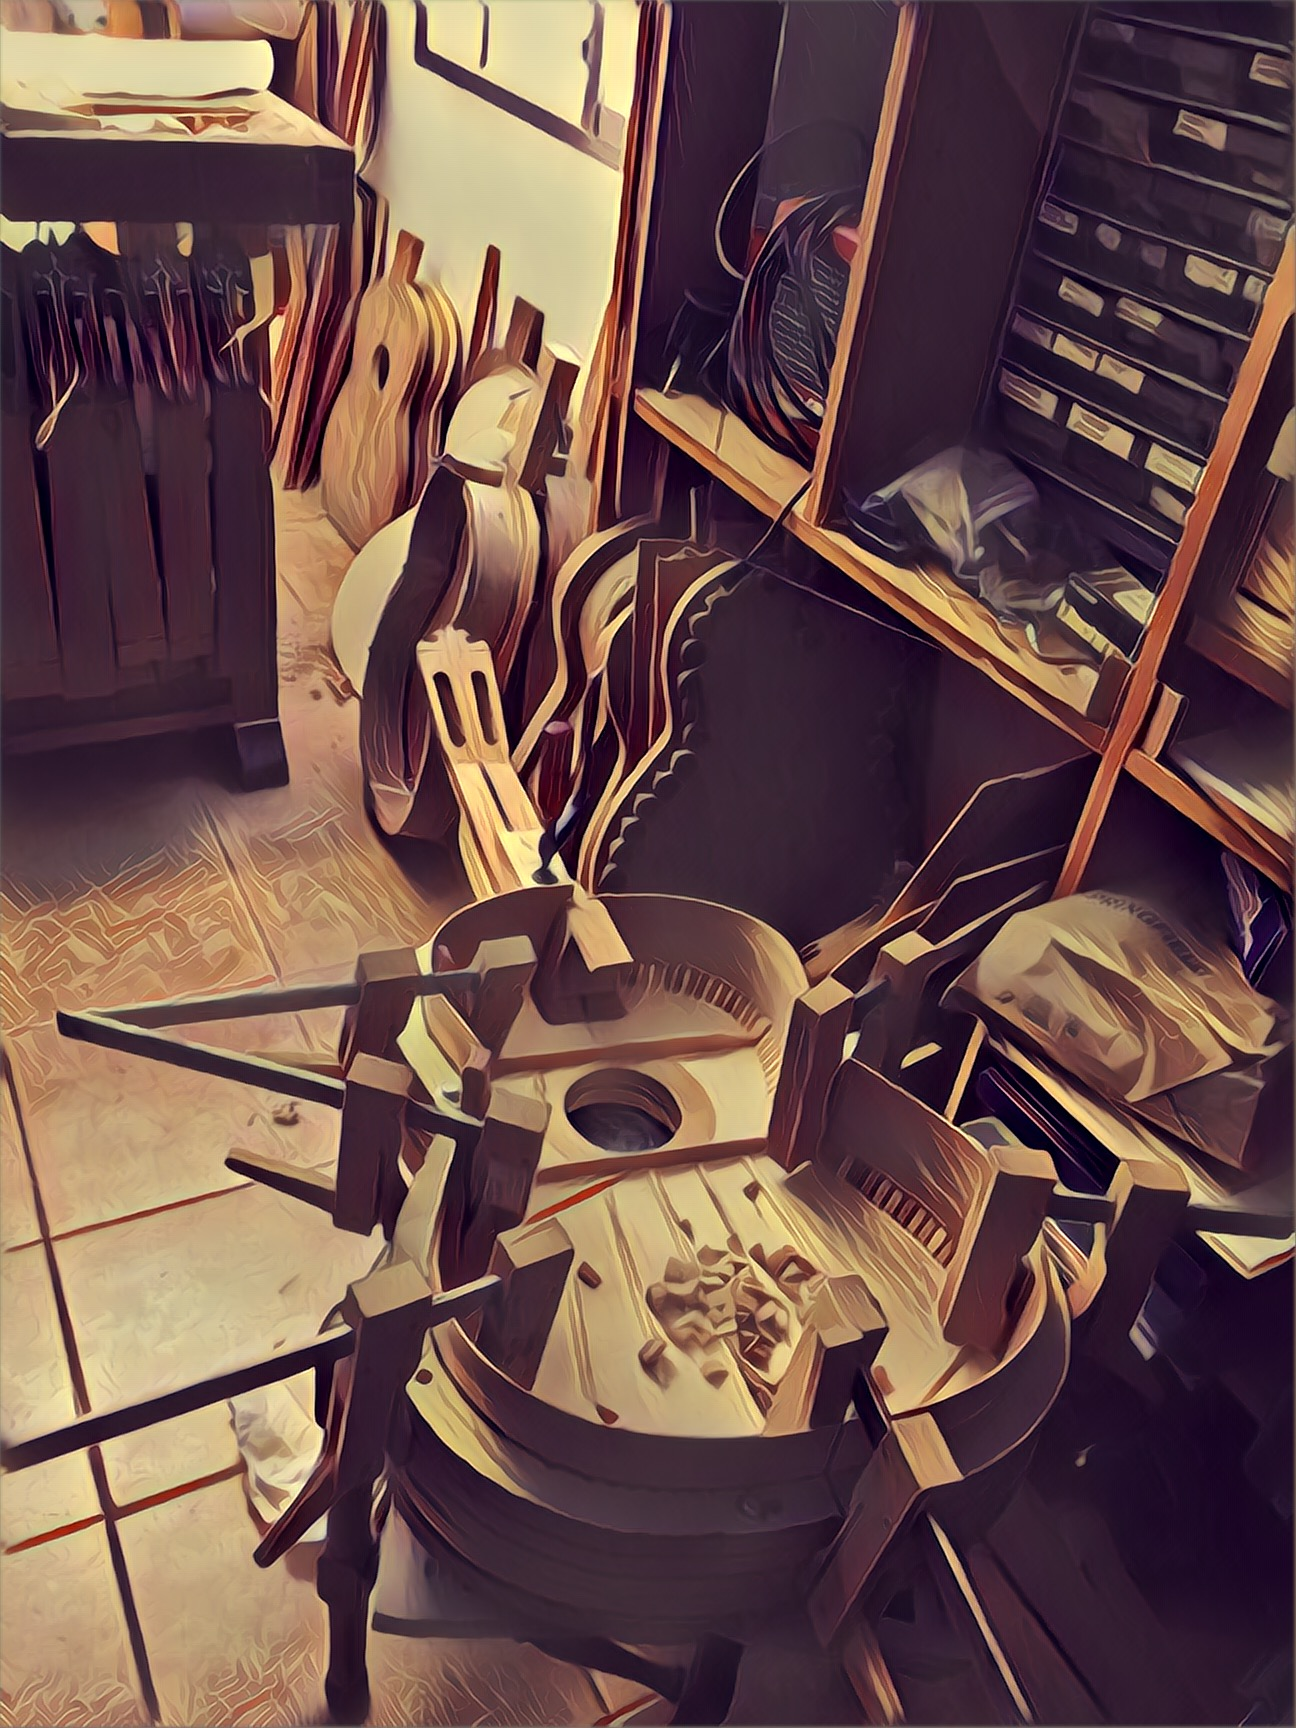 Custom Made Guitars - We also work with over 40 luthiers in Spain, and can have a custom guitar made for you